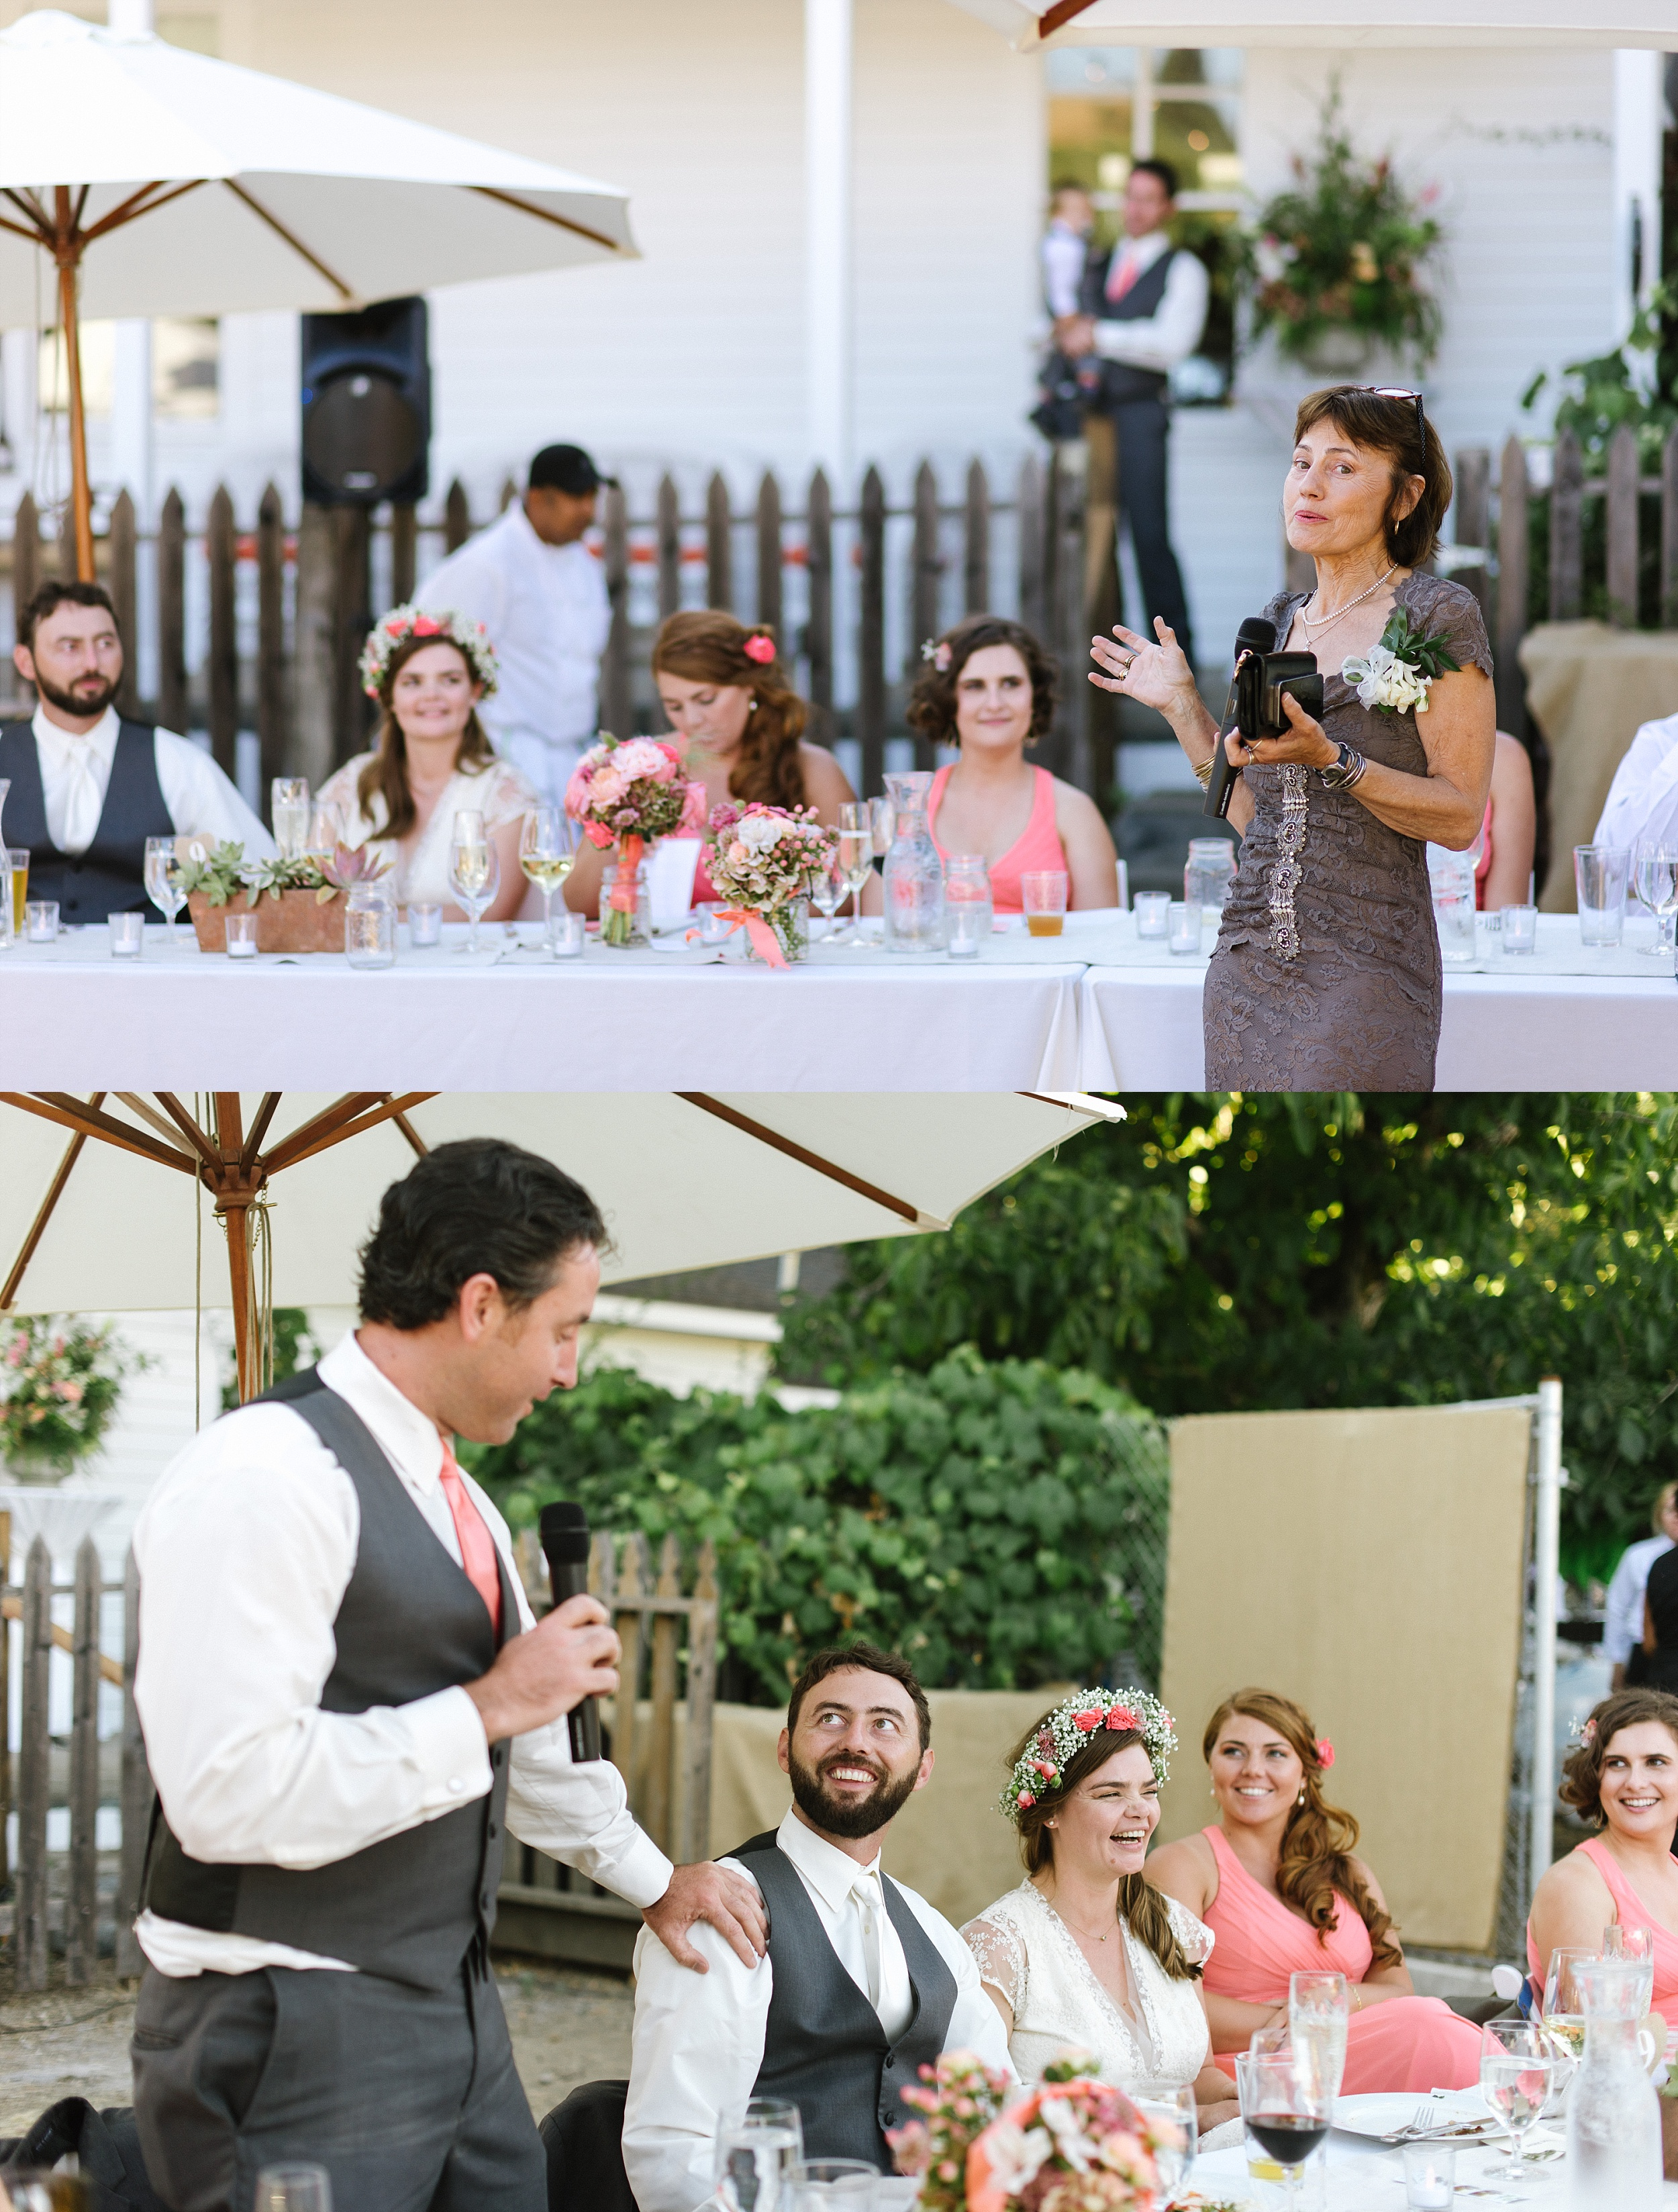 fairfax_ranch_wedding_chelsea_dier_photography_0034.jpg